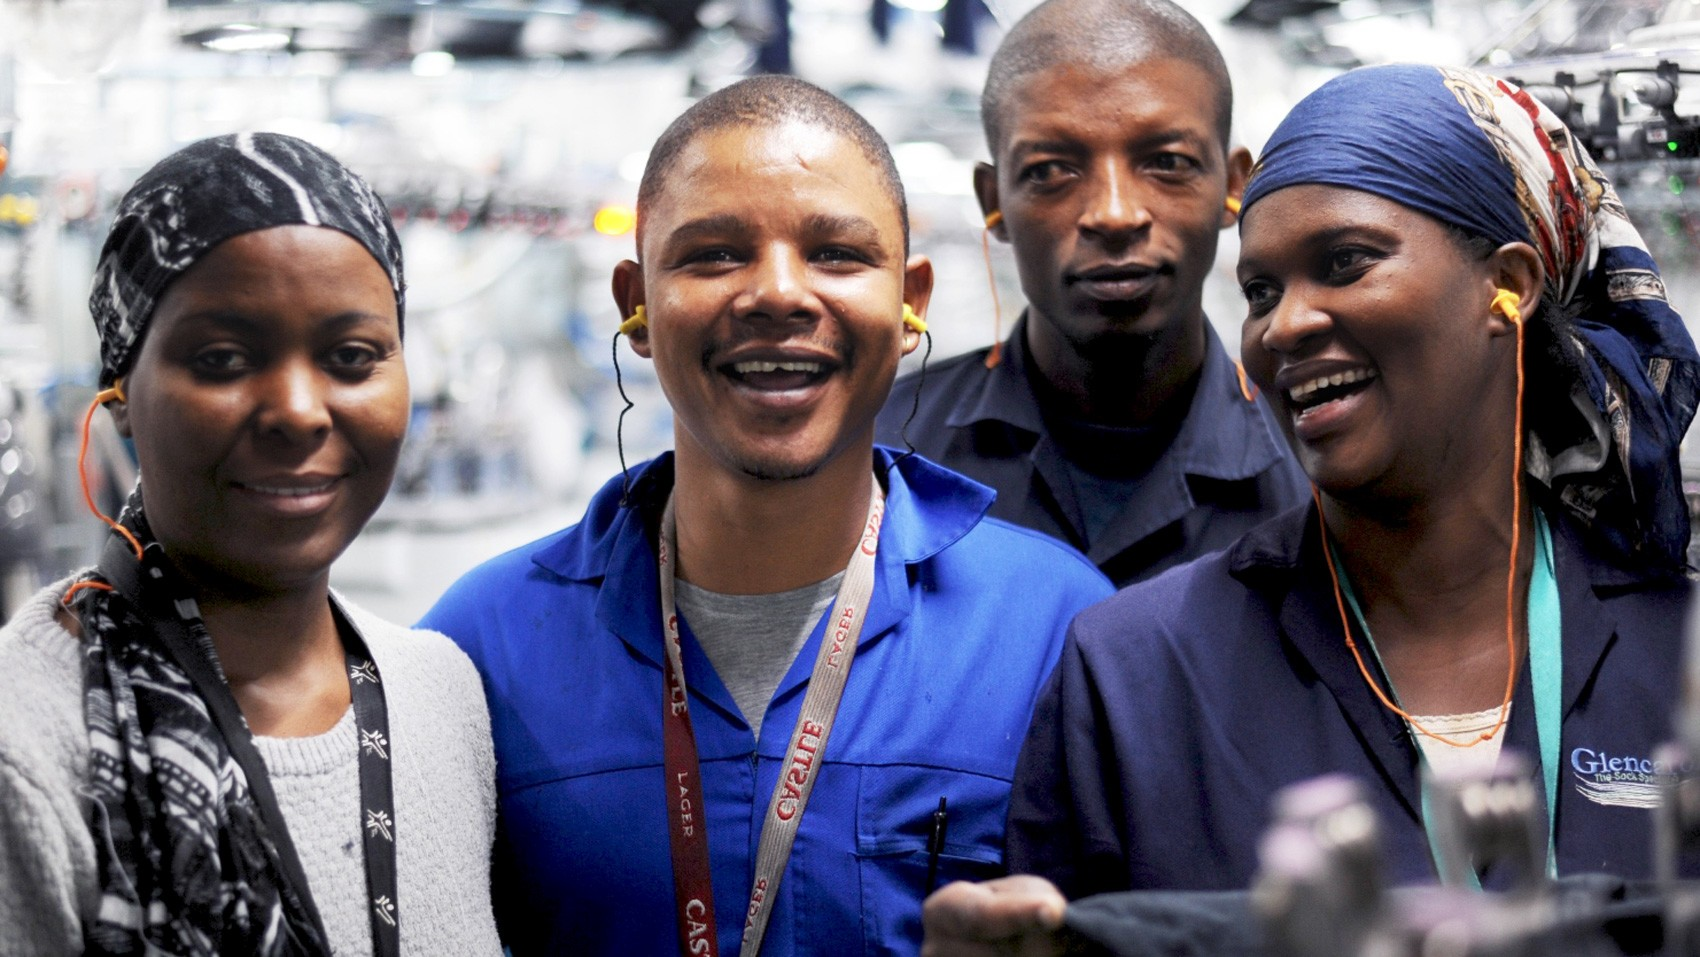 People in Supply Chain/south-african-workers.jpg